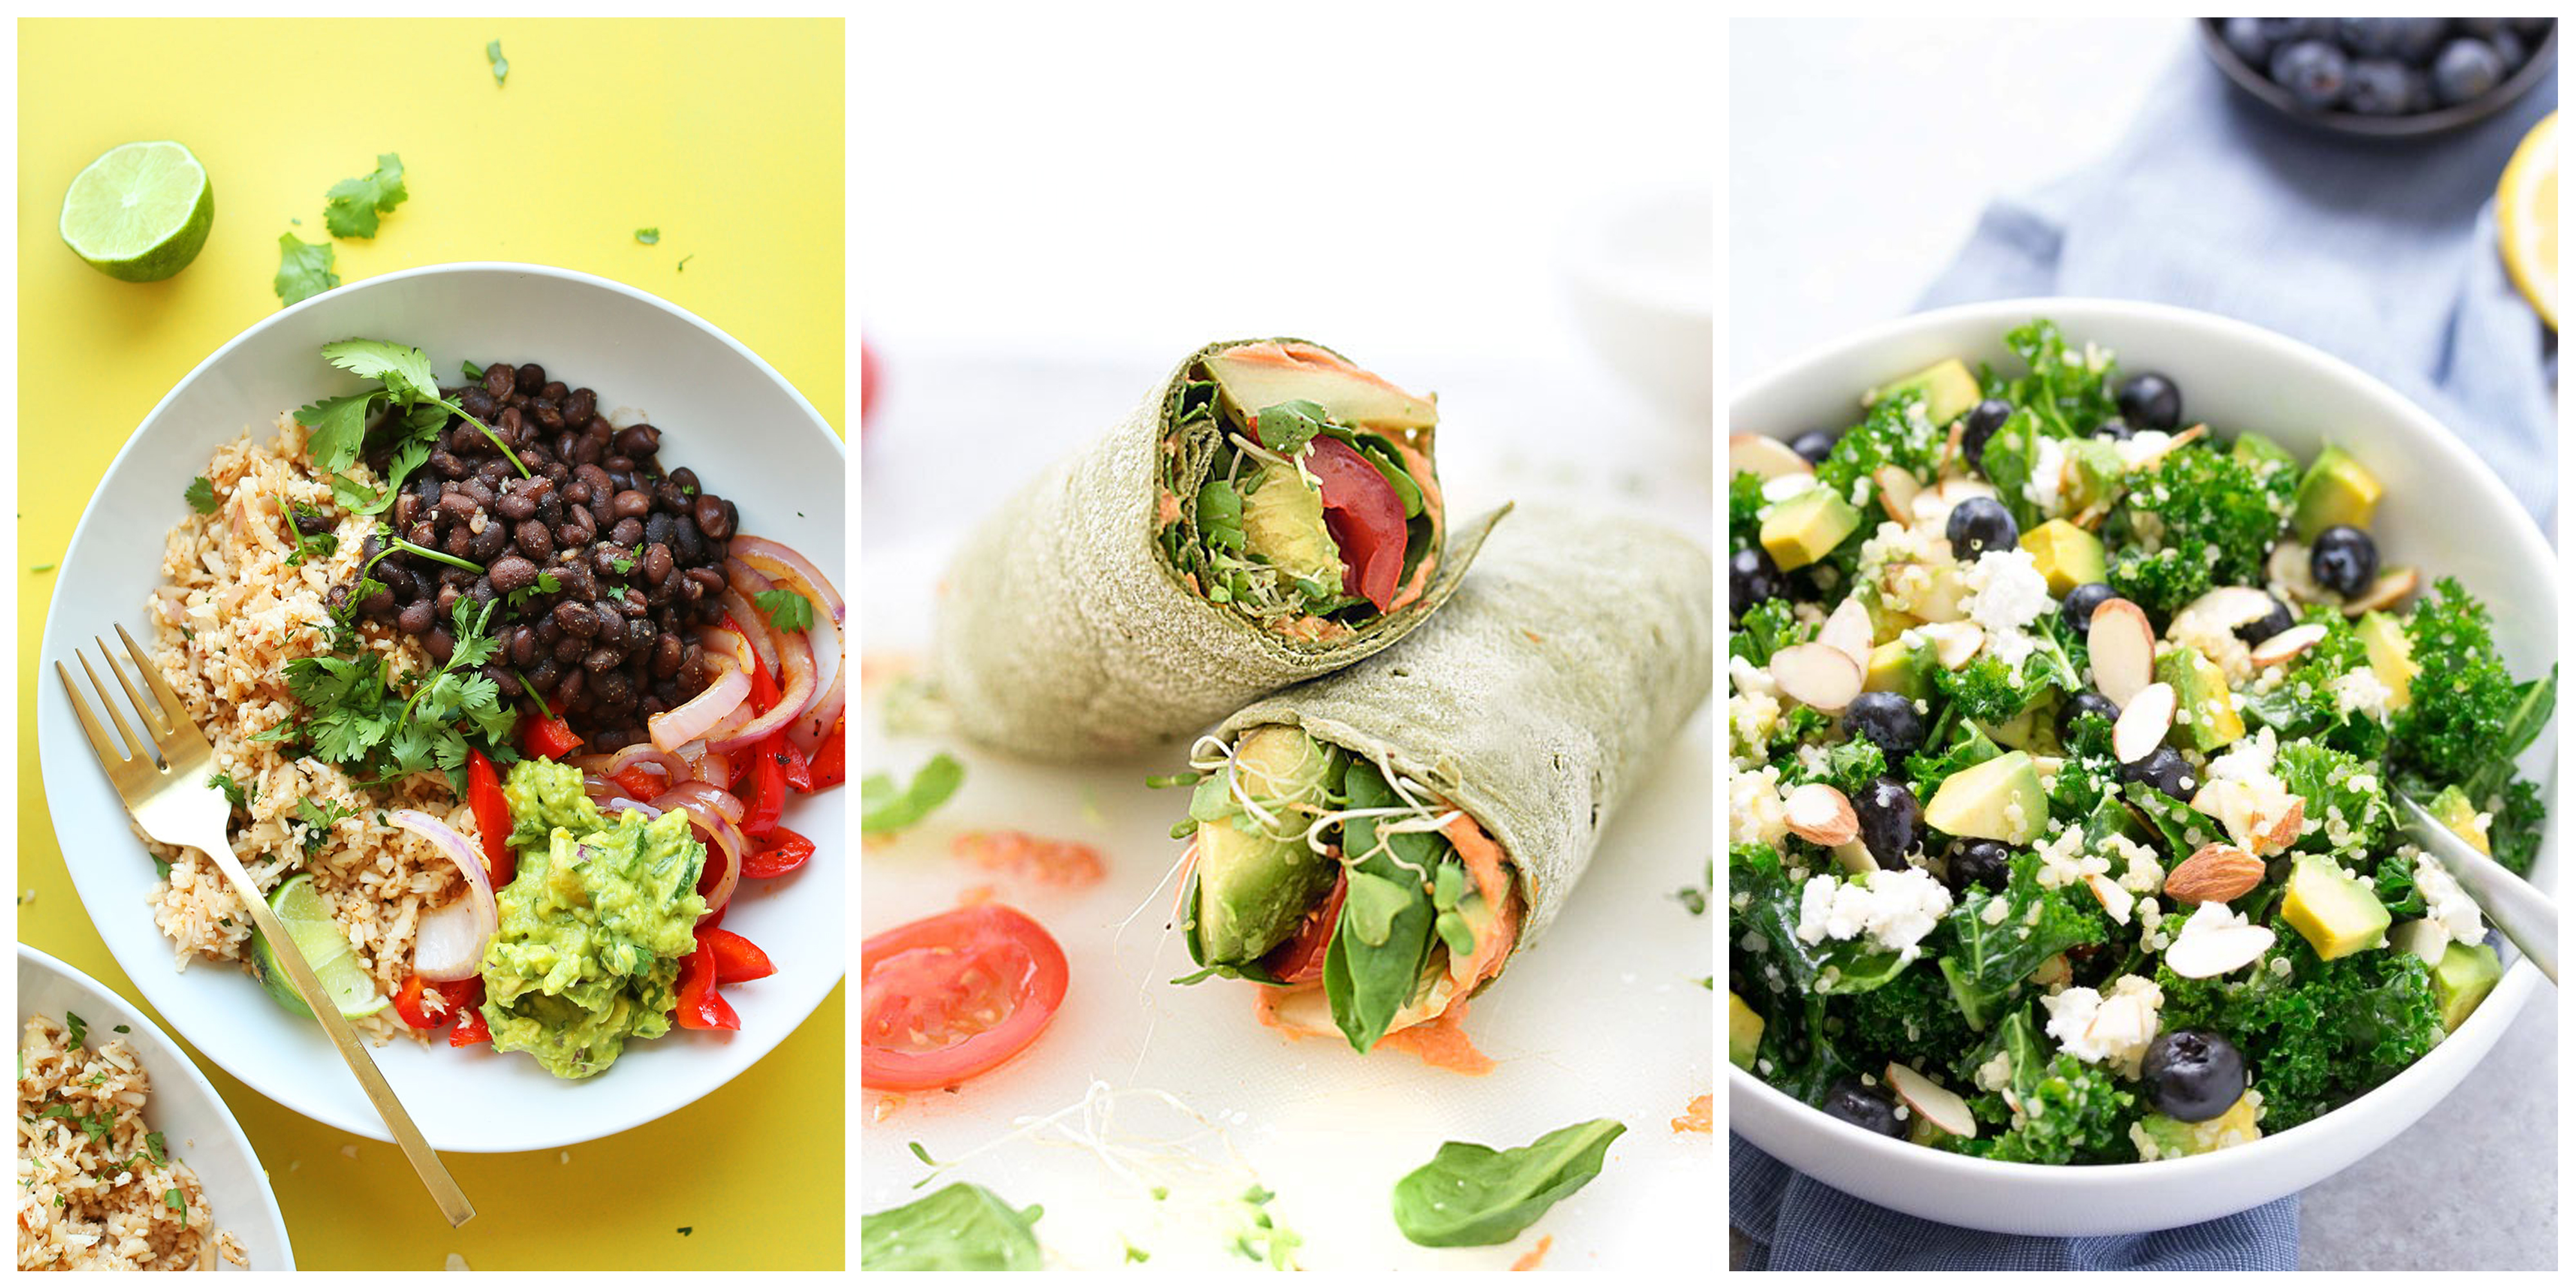 5 Best Lunch Party Menu Ideas: Luncheon Menu For All Occasions